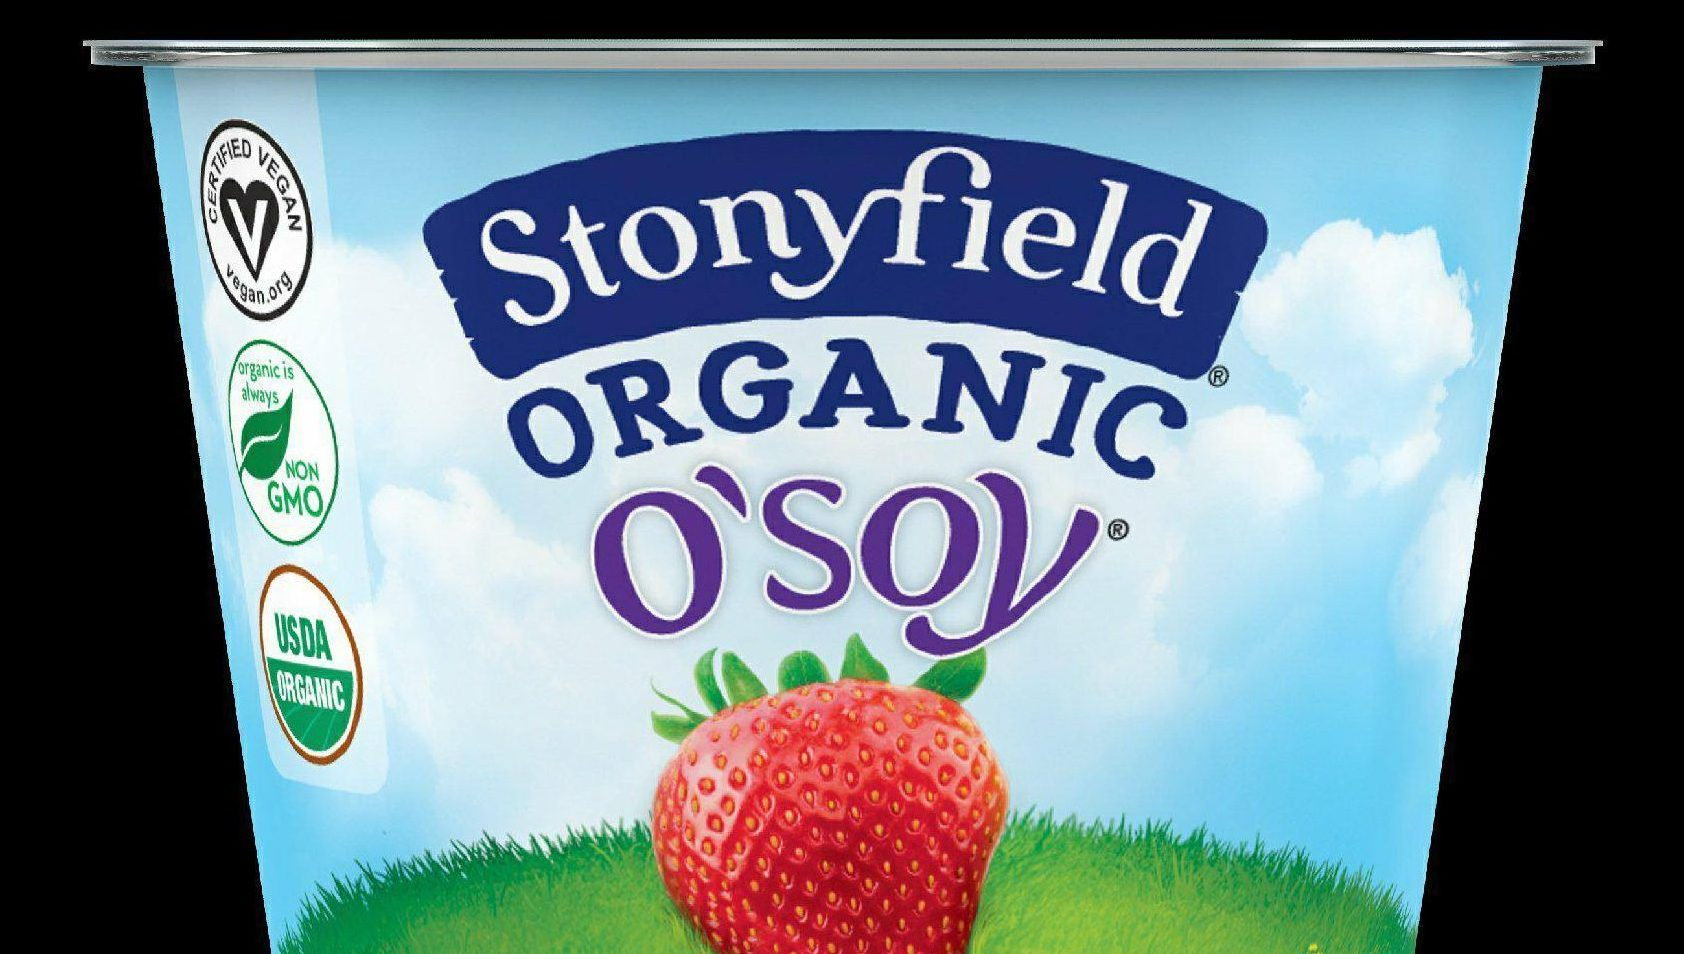 Stonyfield Farm Recalls Soy Yogurts That May Be Dairy Yogurts